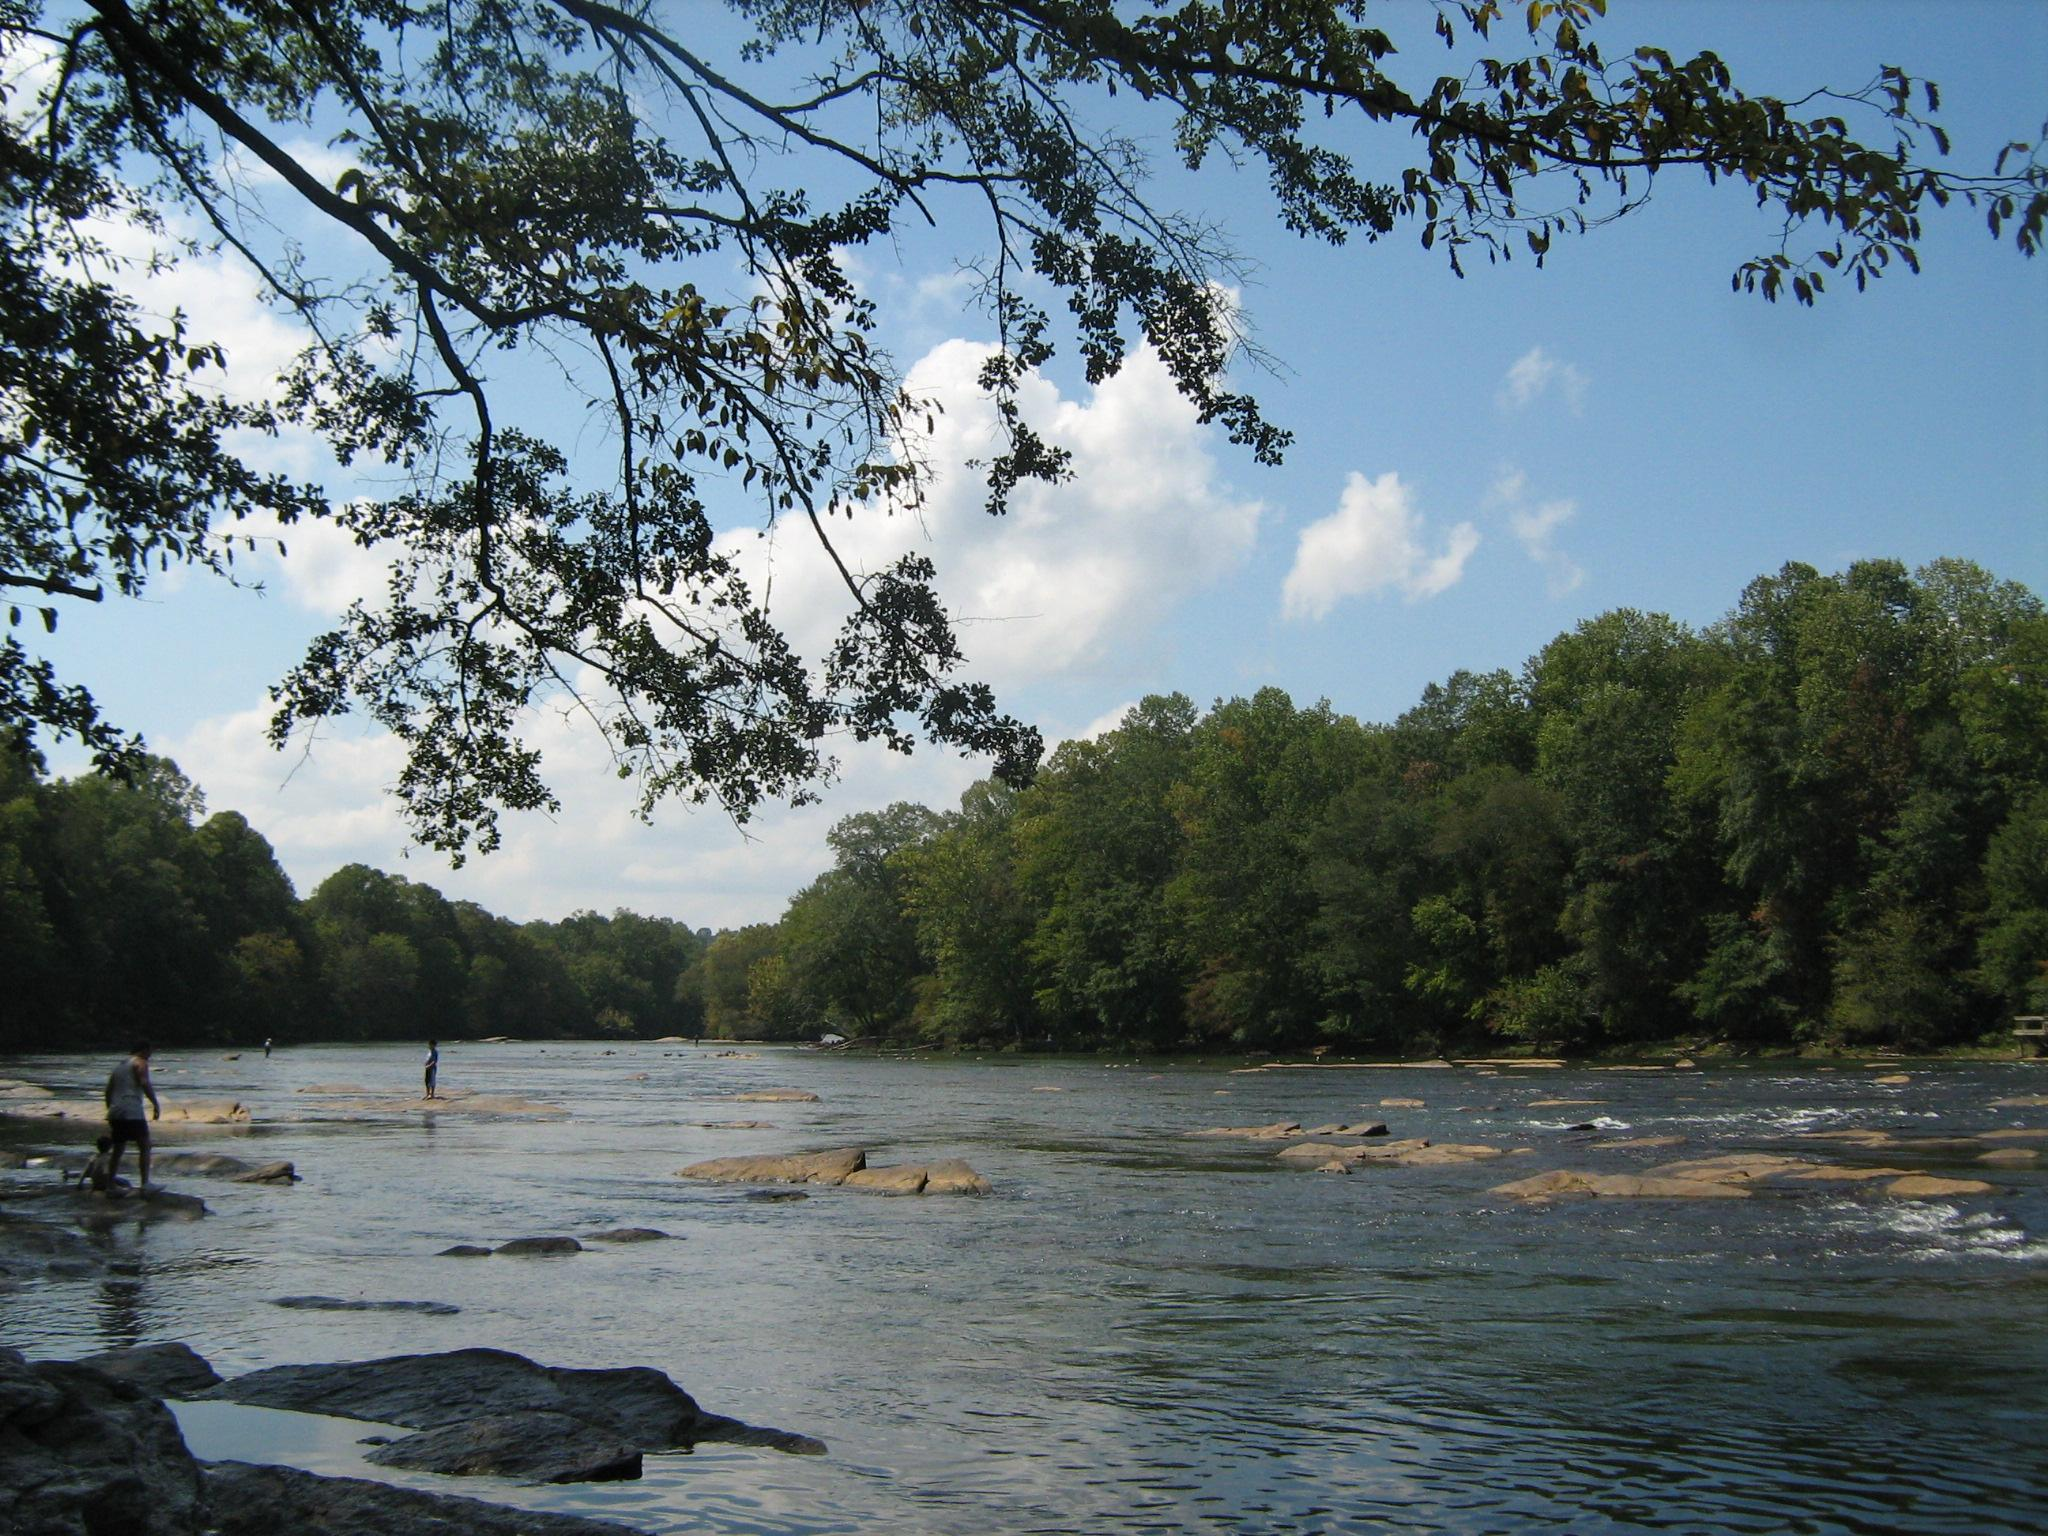 The Chattahoochee River in Georgia, just downstream from Lake Lanier (Mike Gonzalez/Wikimedia Commons)